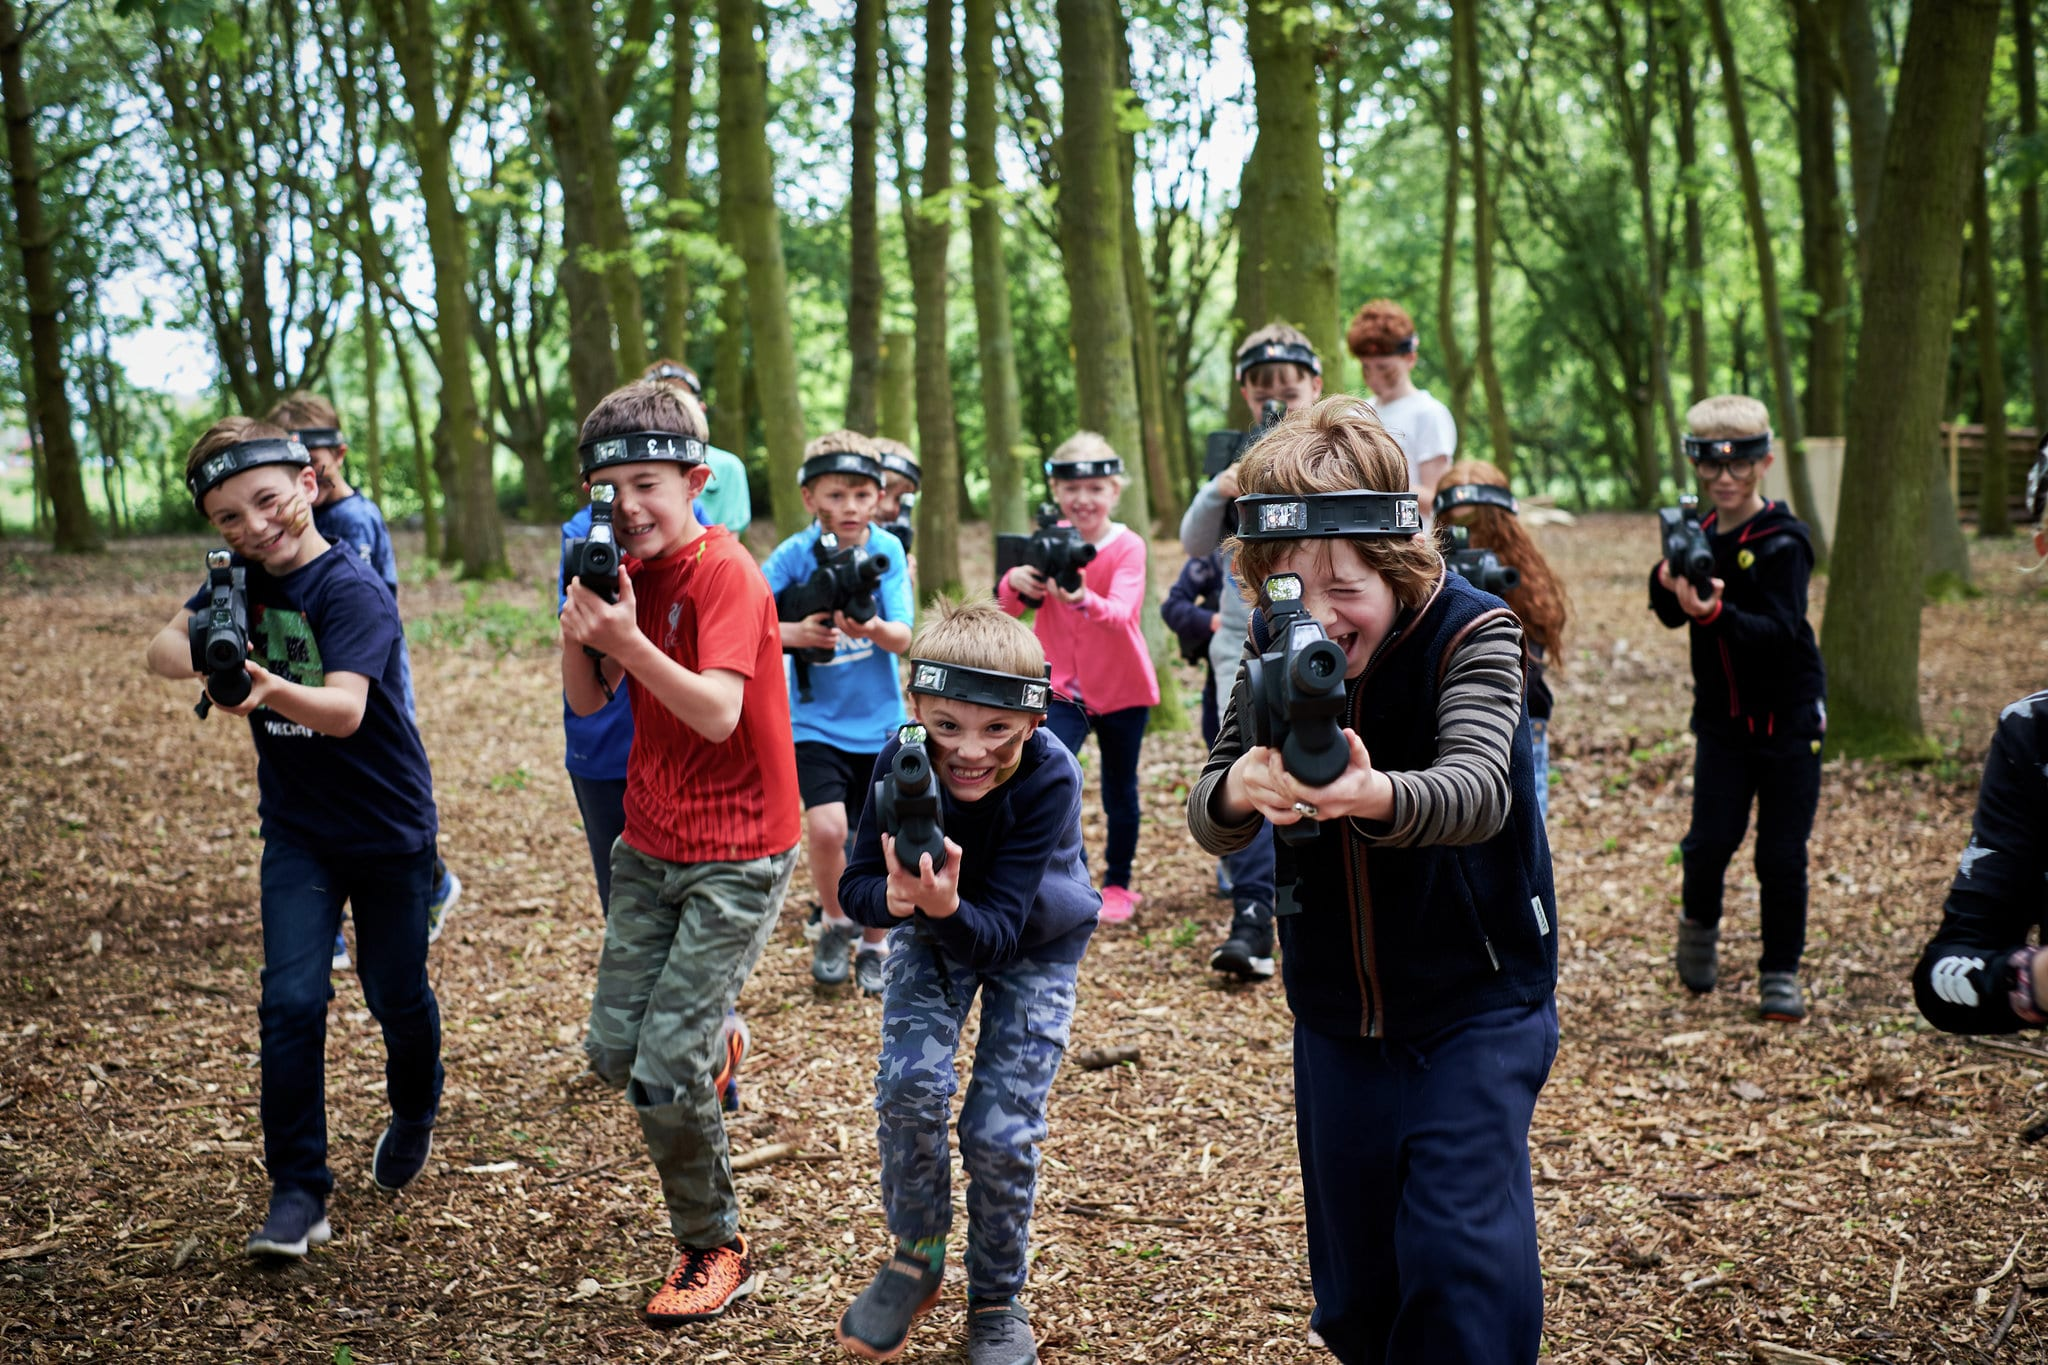 Outdoor Lasertag powered by Bedlam